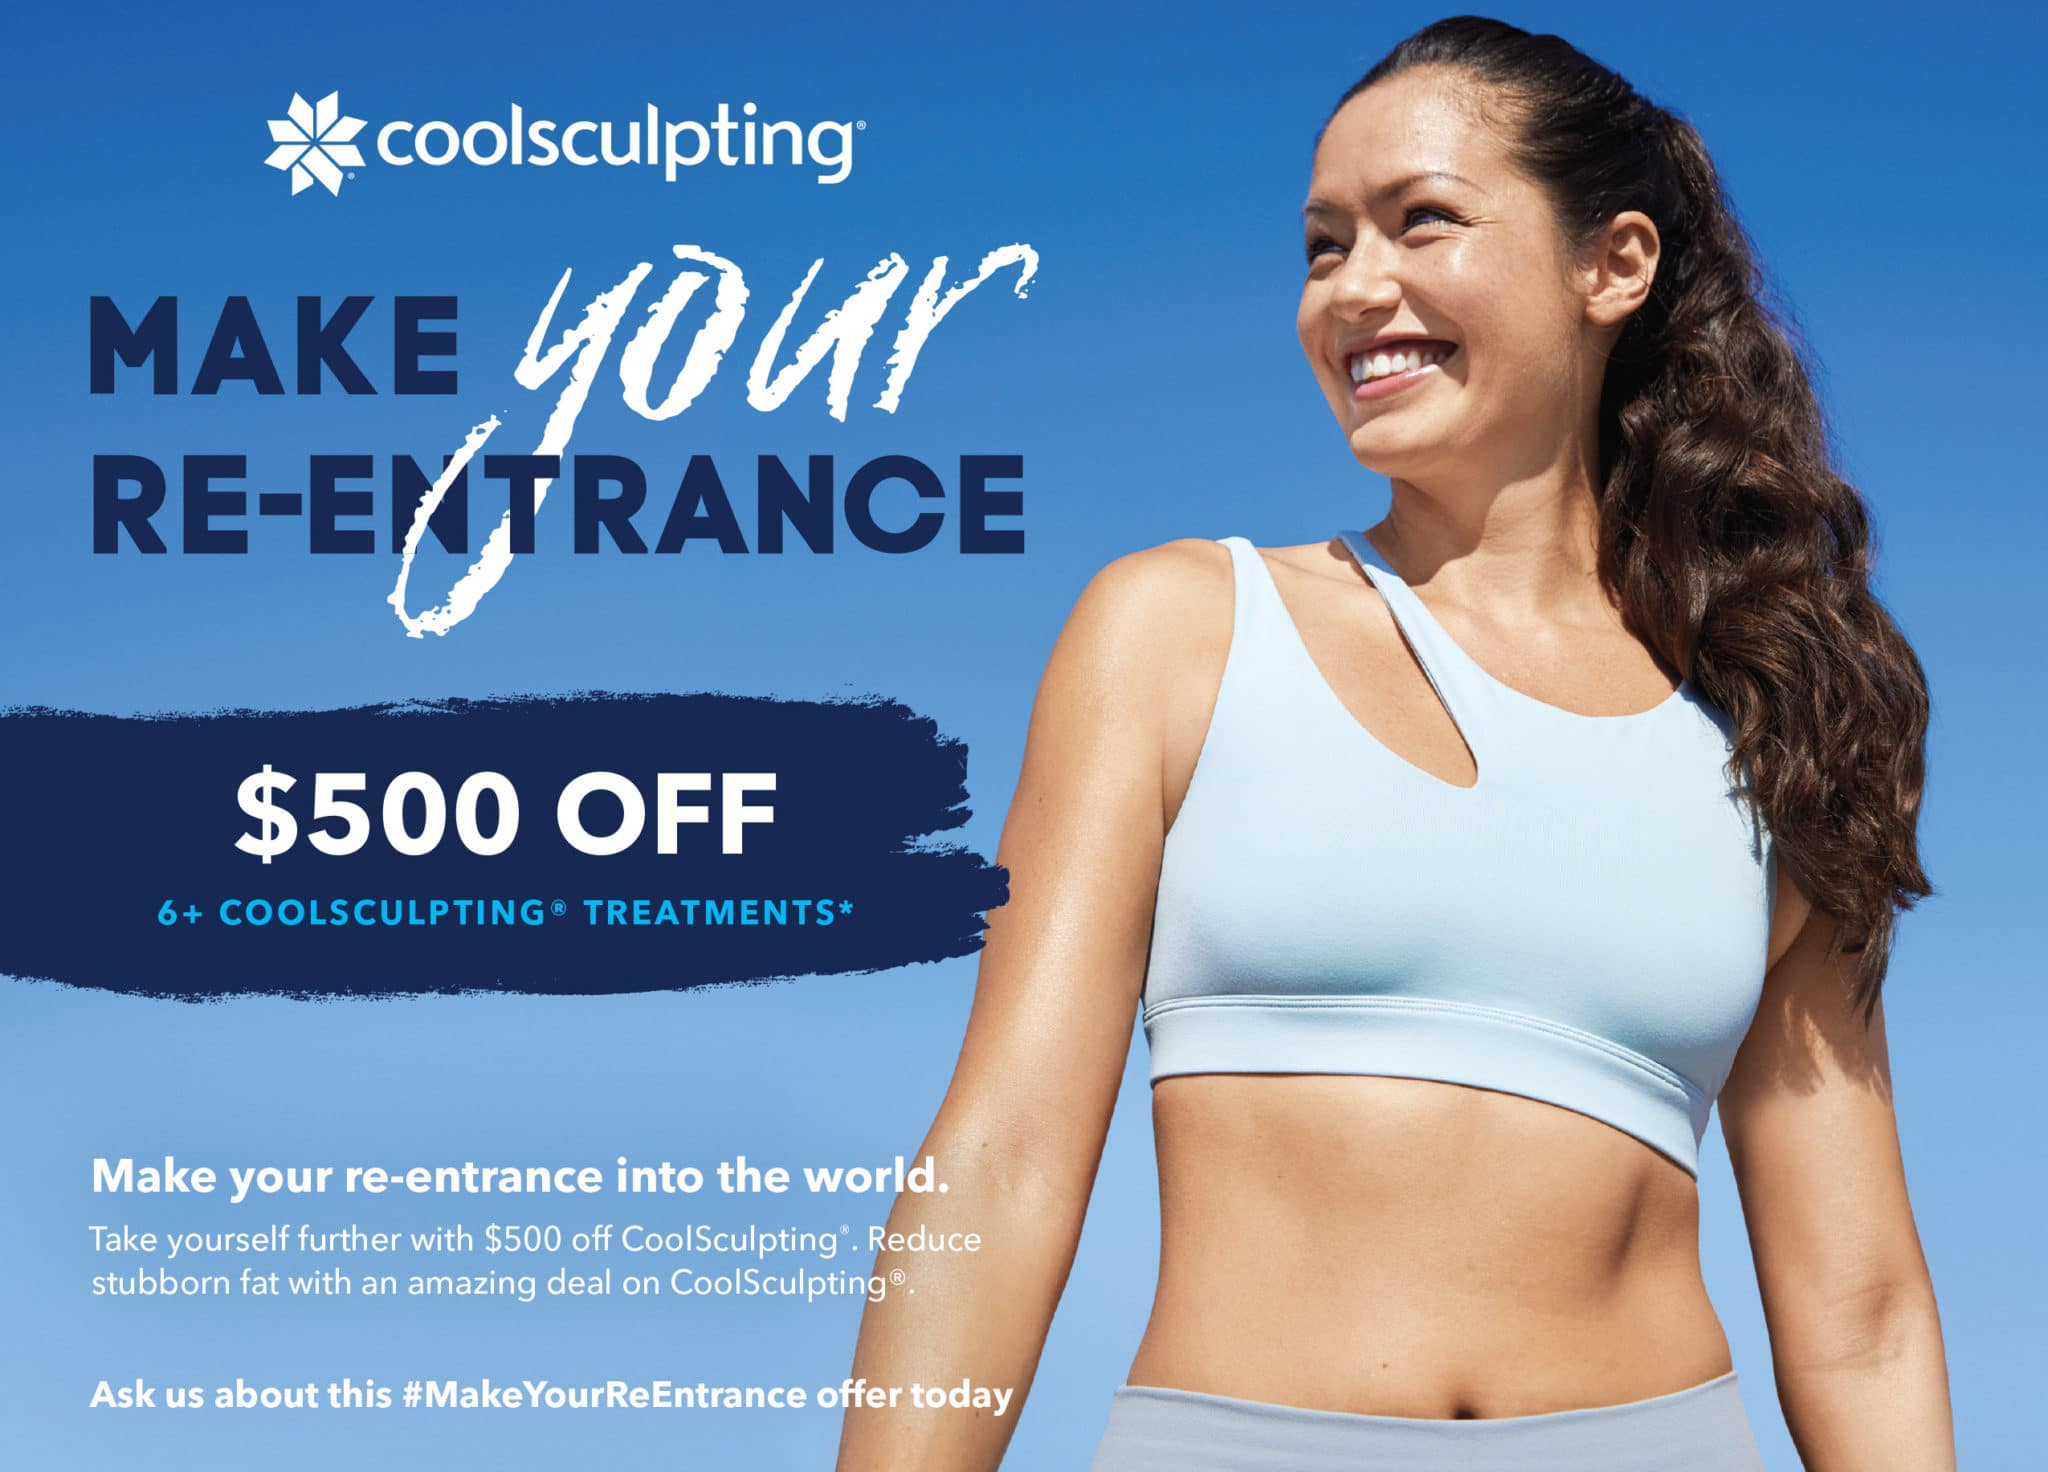 Coolsculpting Make your re entrance